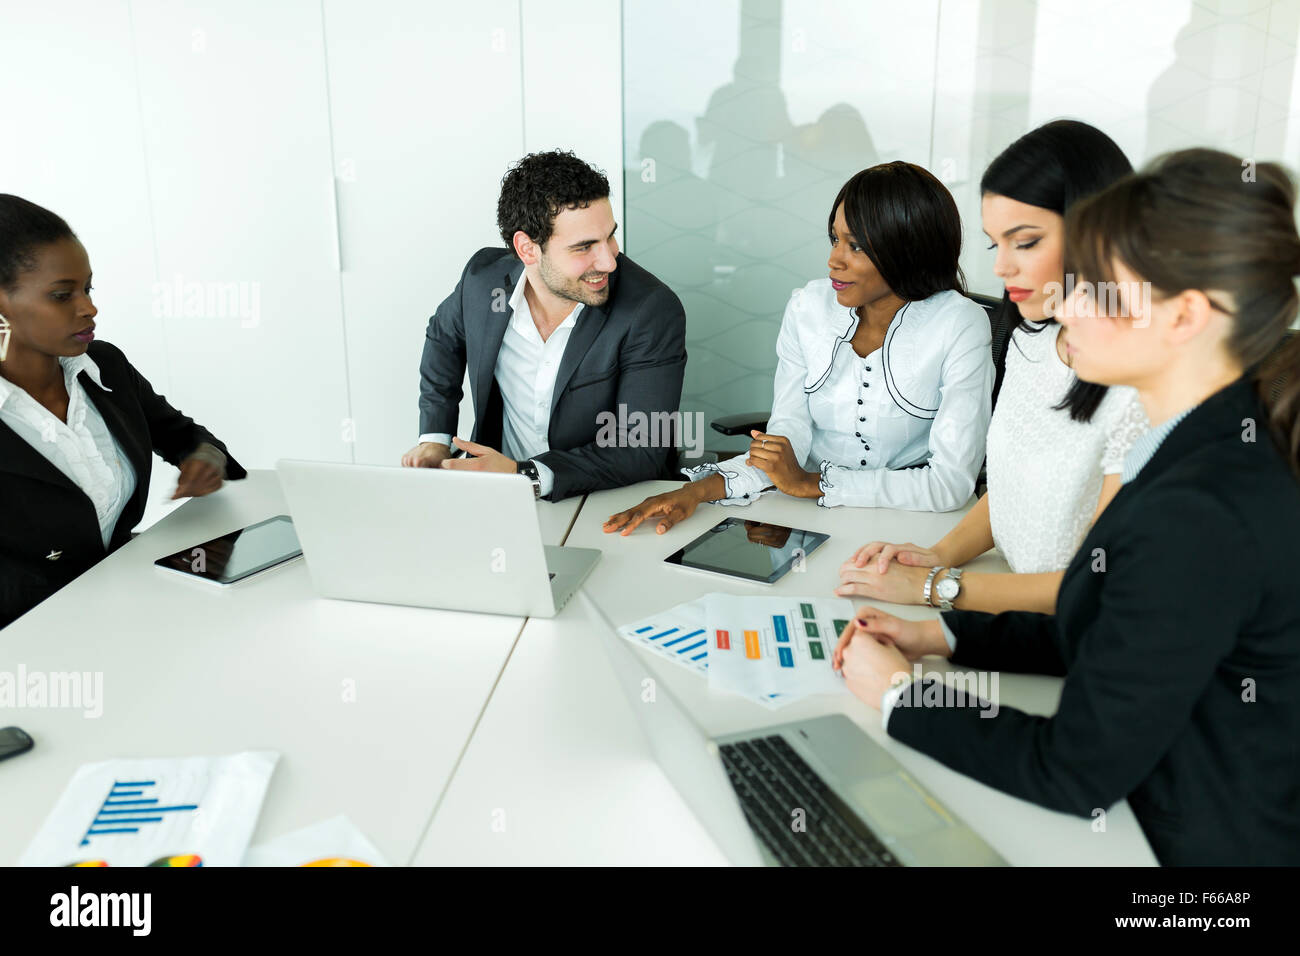 Business brainstorming and exchange of ideas by nicely dressed colleagues - Stock Image